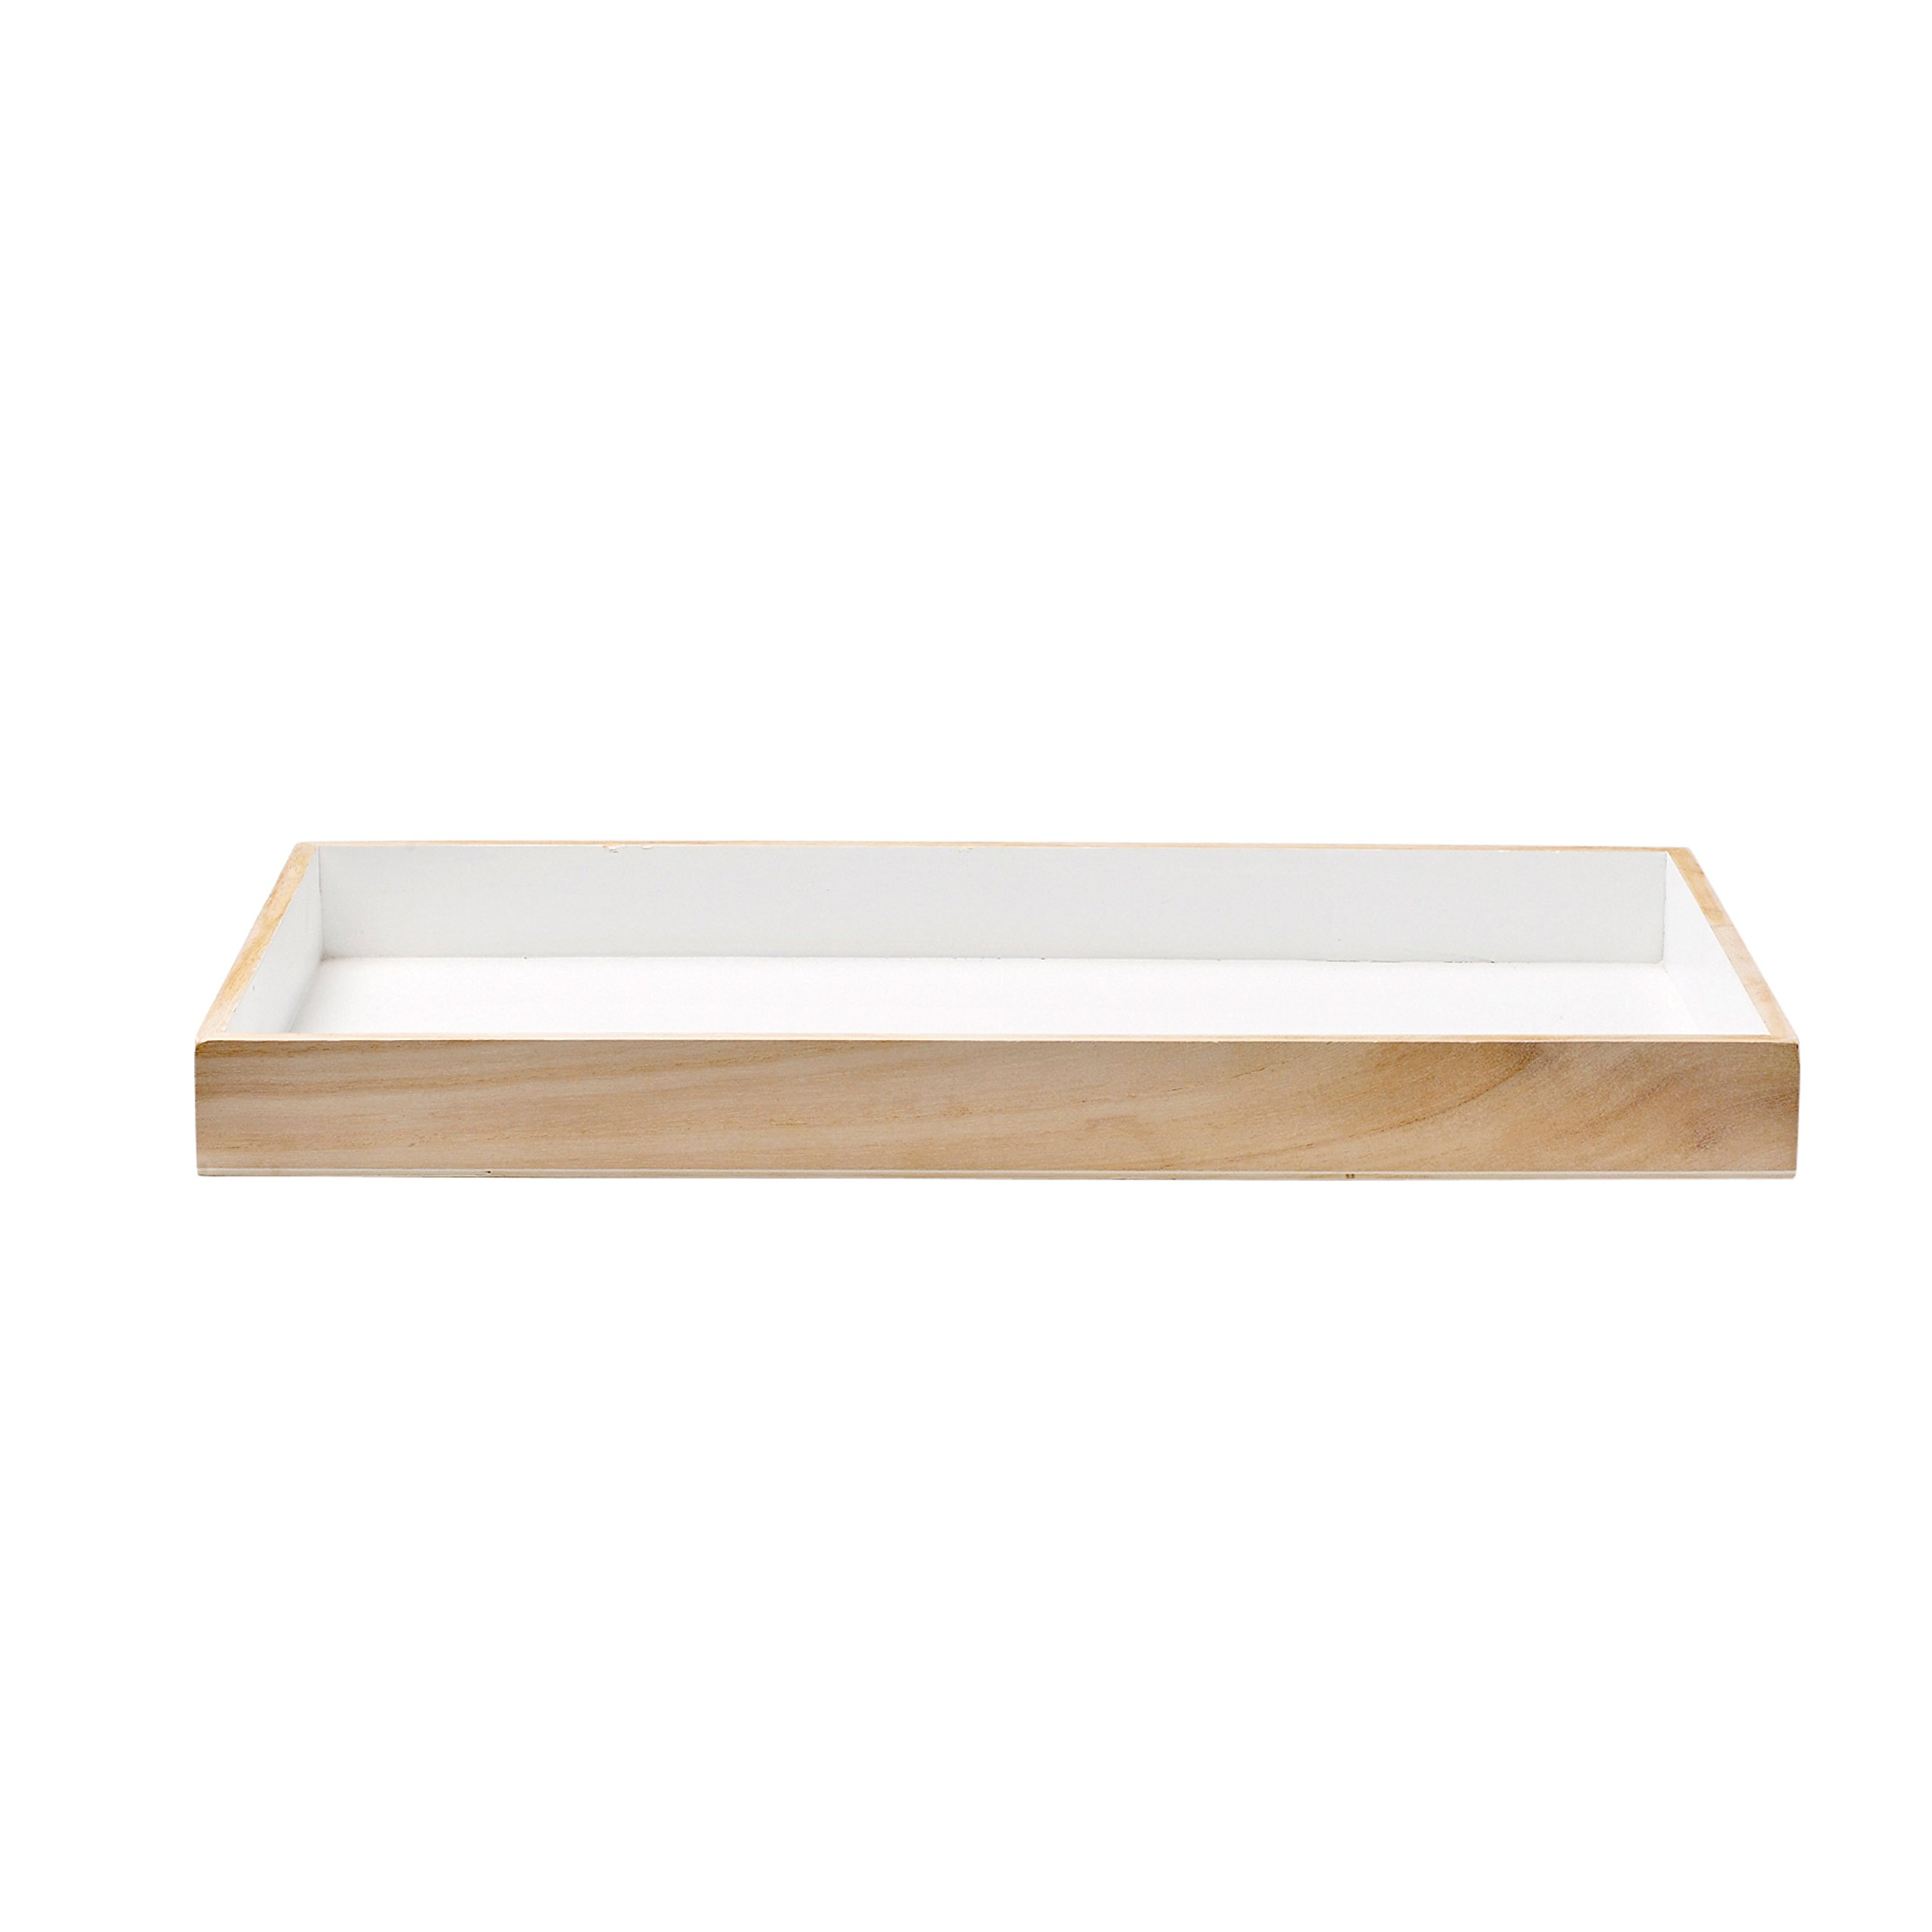 Bloomingville A509053 Wood Tray with White Bottom, Multicolor